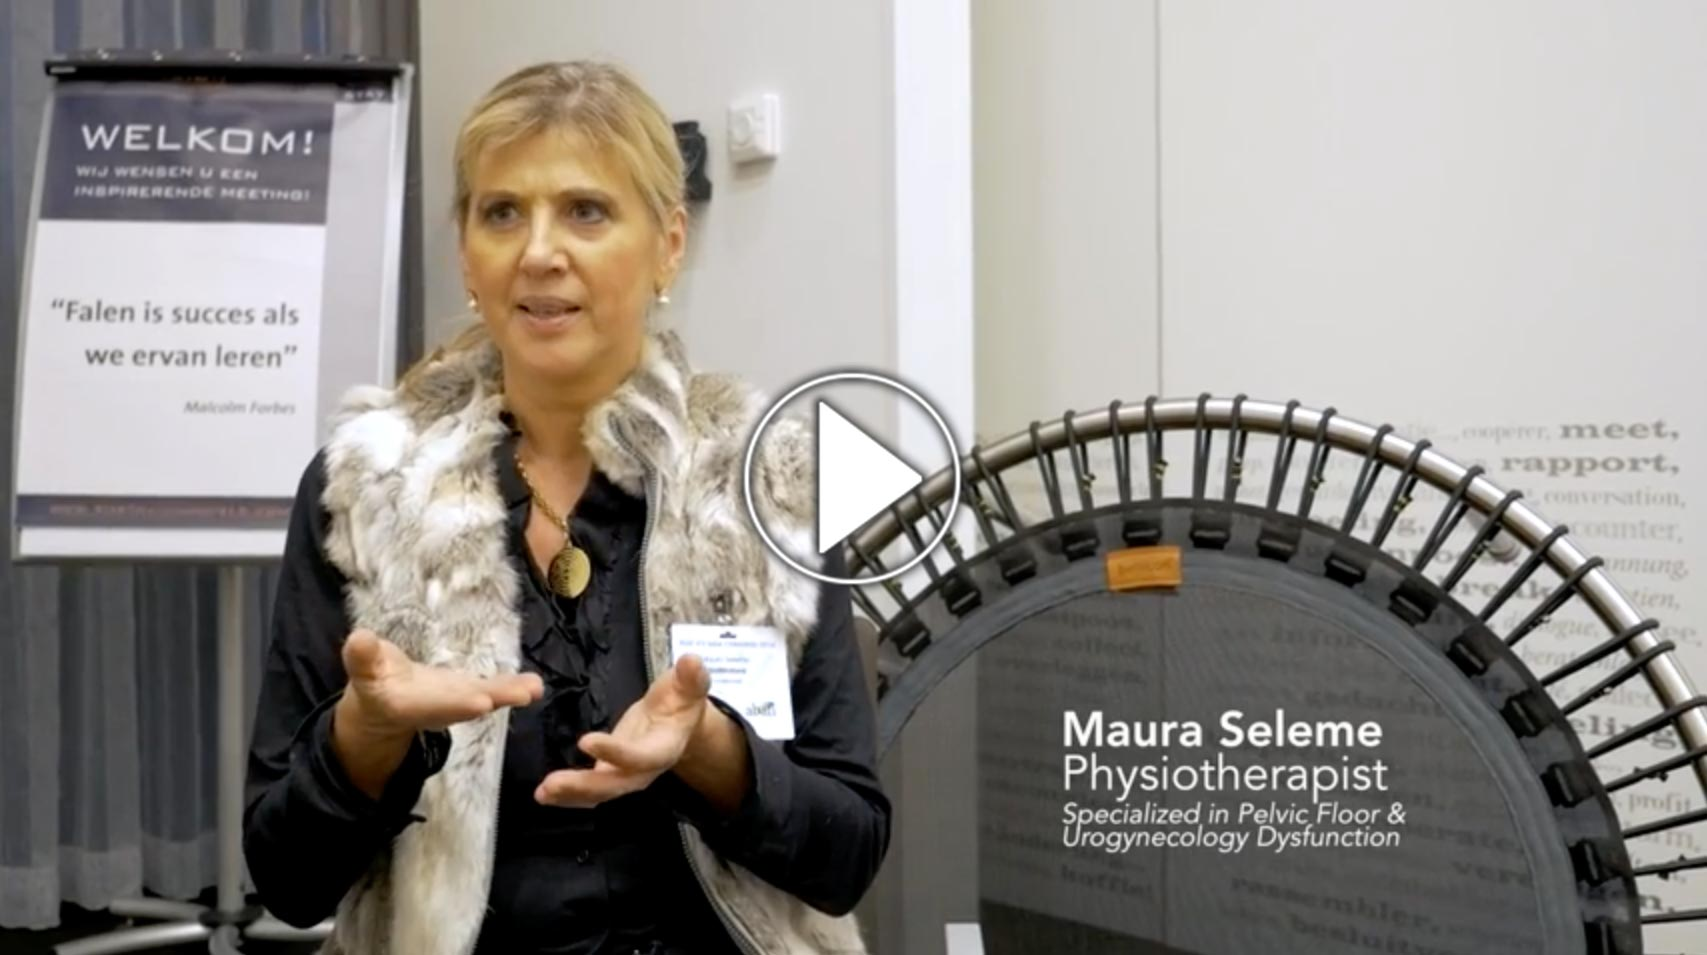 Dr. Maura Seleme talks about the pelvic floor